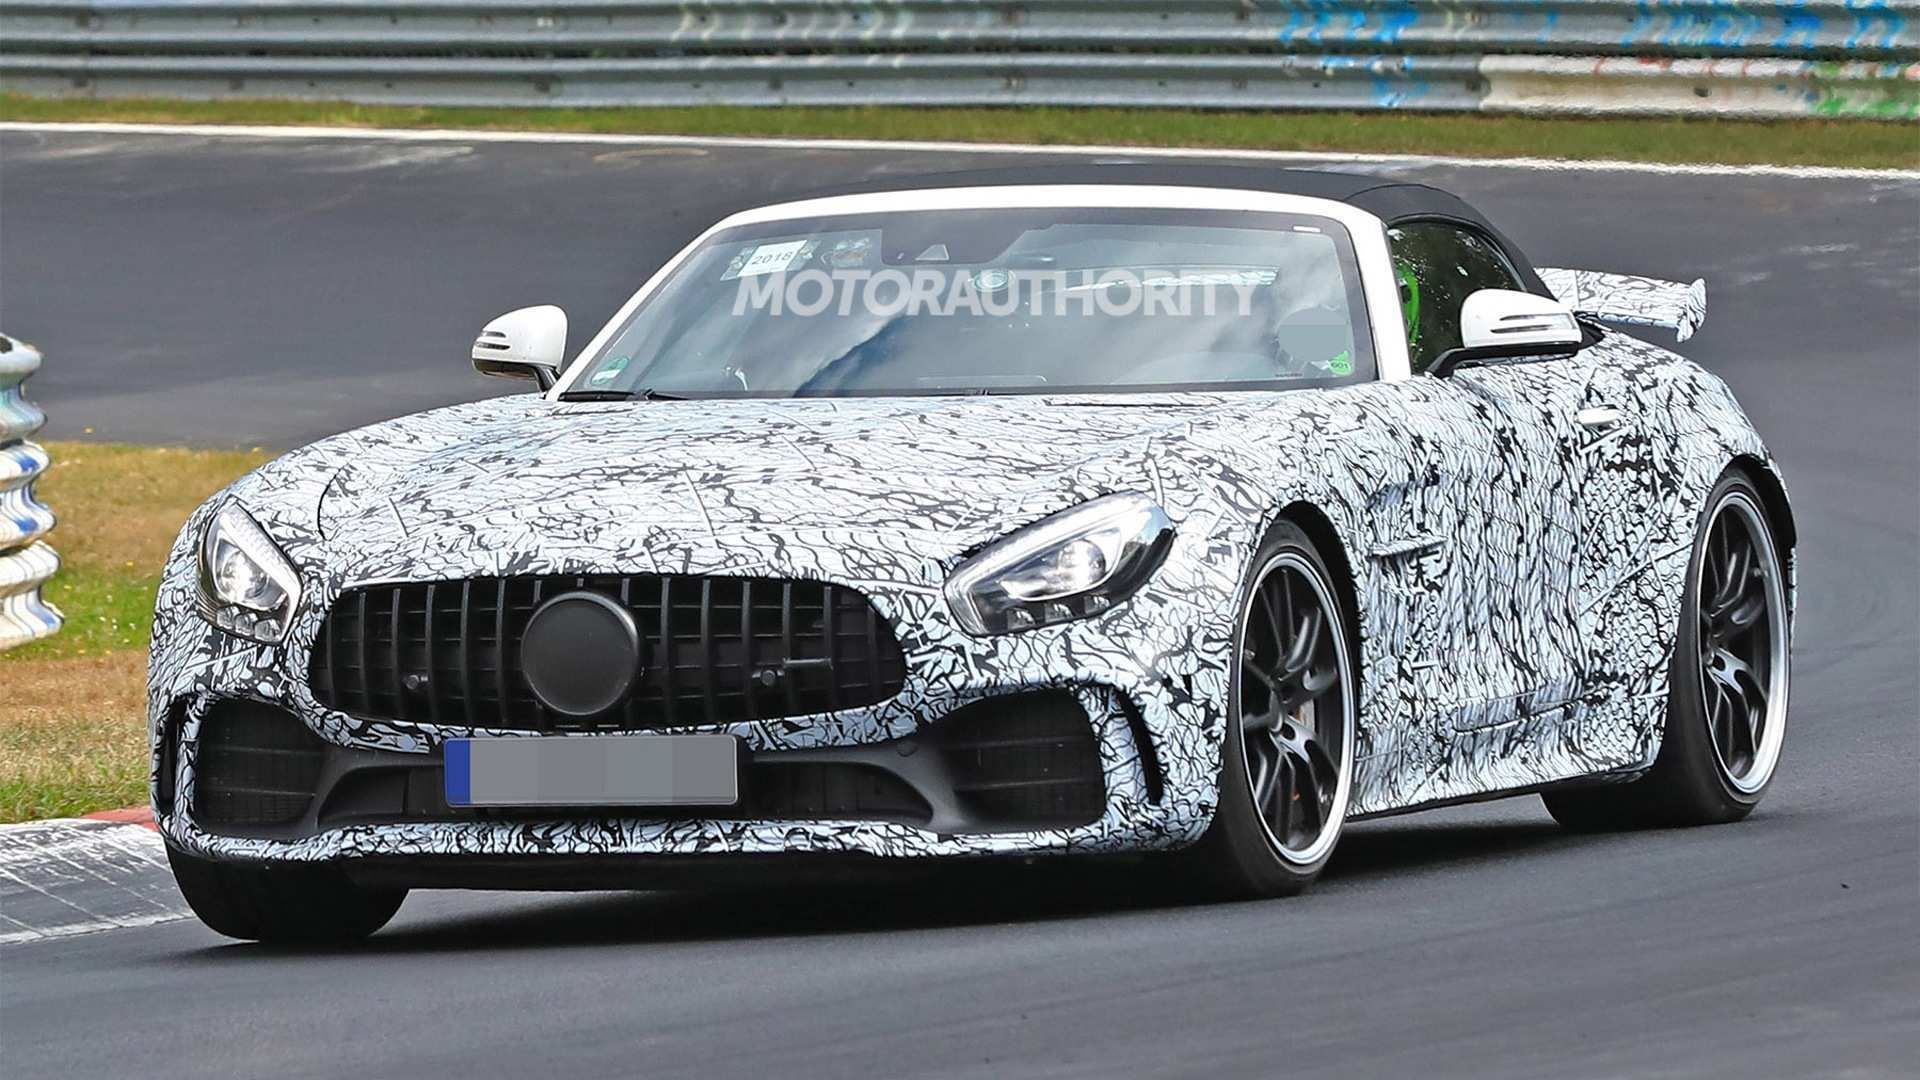 90 Gallery of Mercedes Amg Gt 2020 Configurations with Mercedes Amg Gt 2020